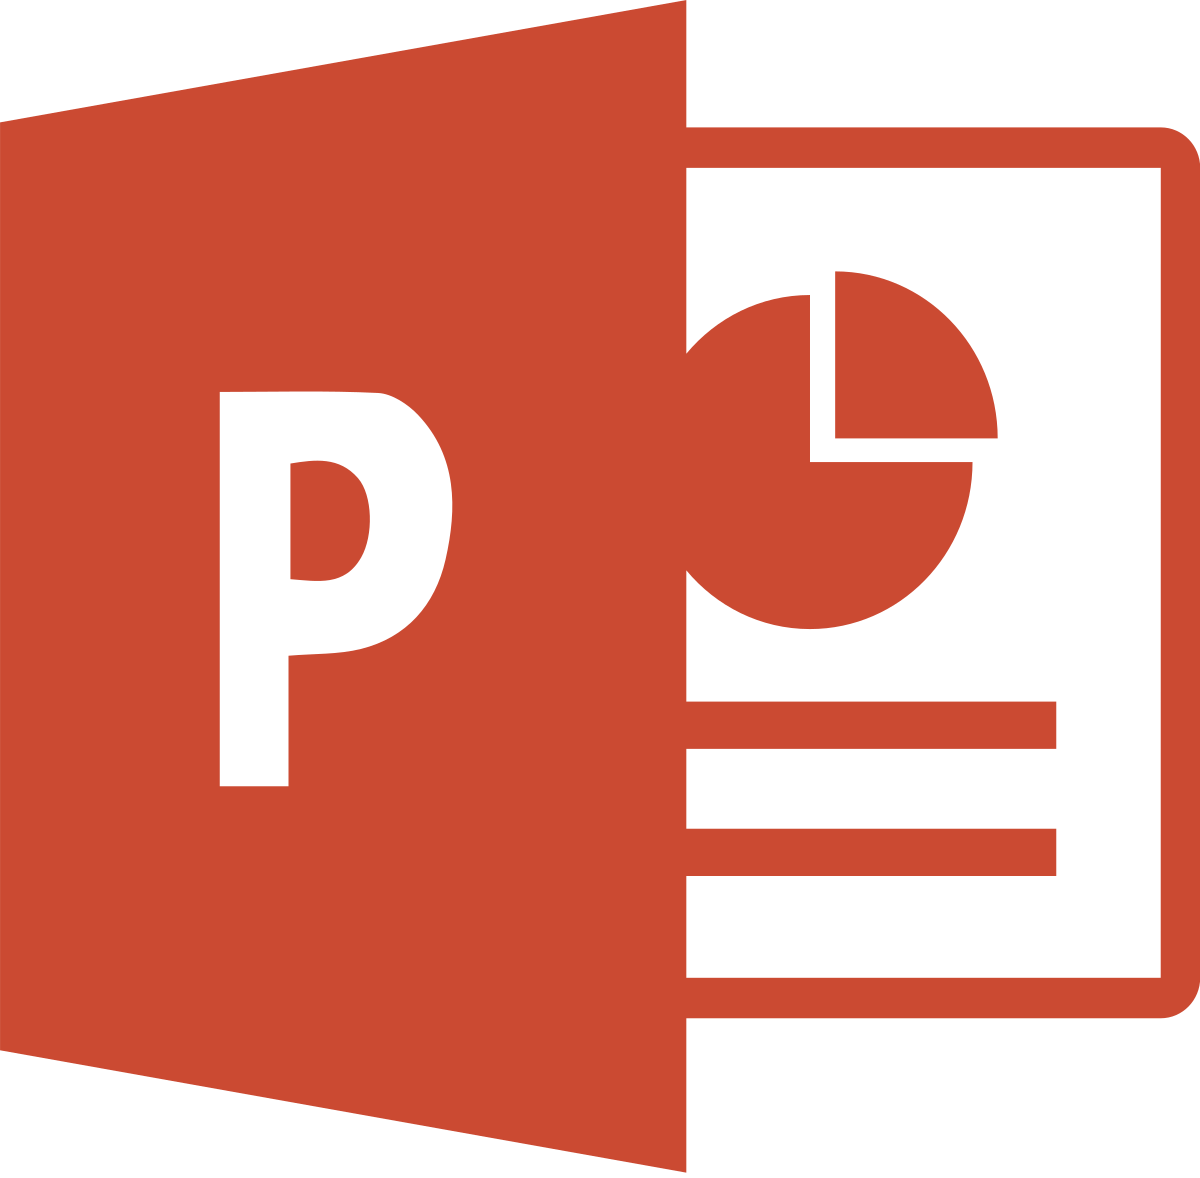 Powerpoint money clipart images image Microsoft PowerPoint - Wikipedia image